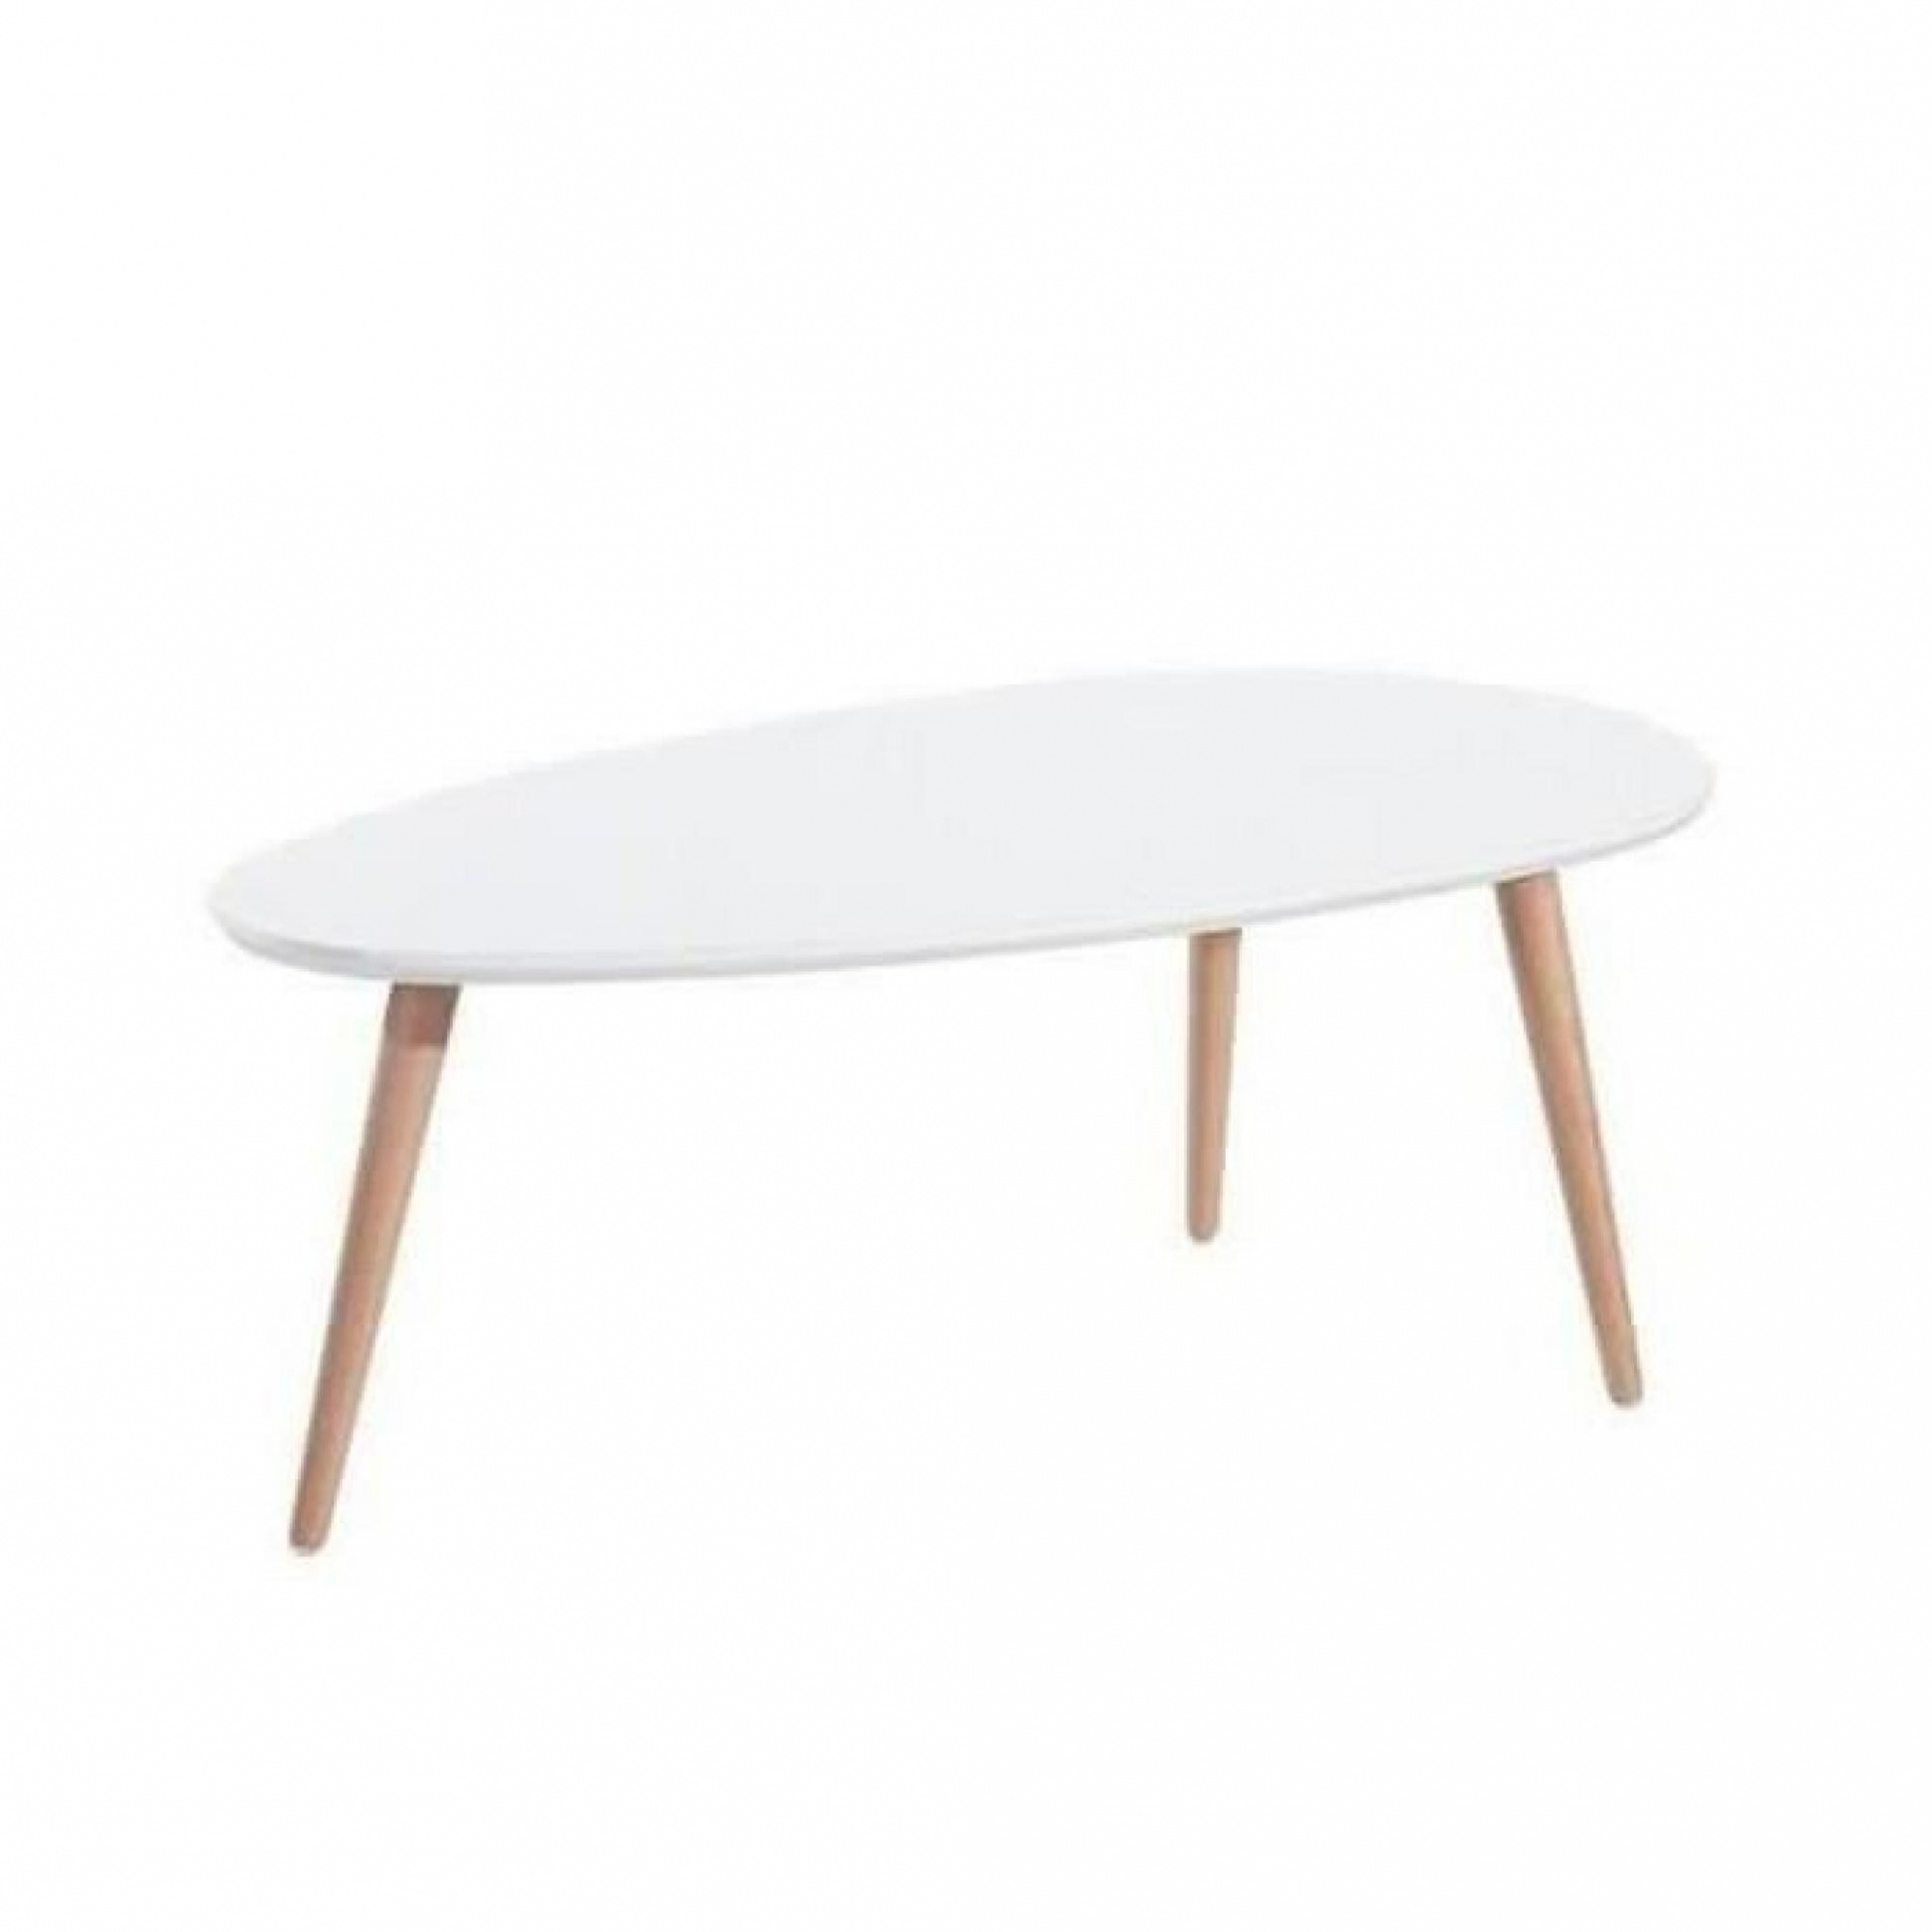 Table Verre Pas Cher Ides Dimages De Table Basse Scandinave Pas Cher Table